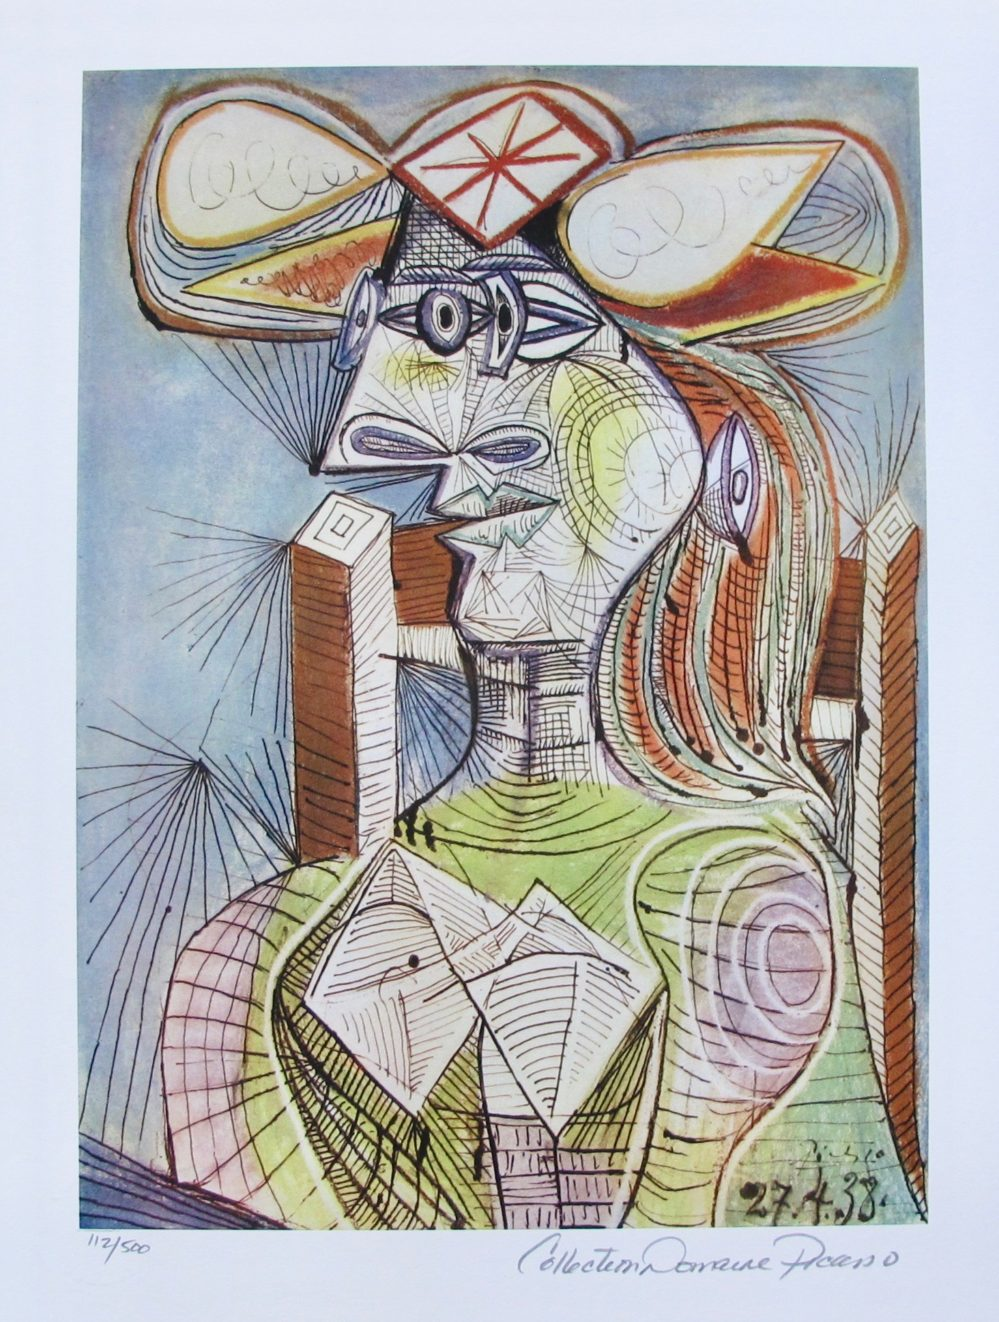 Pablo Picasso SEATED WOMAN ON WOOD CHAIR Estate Signed Limited Edition Small Giclee